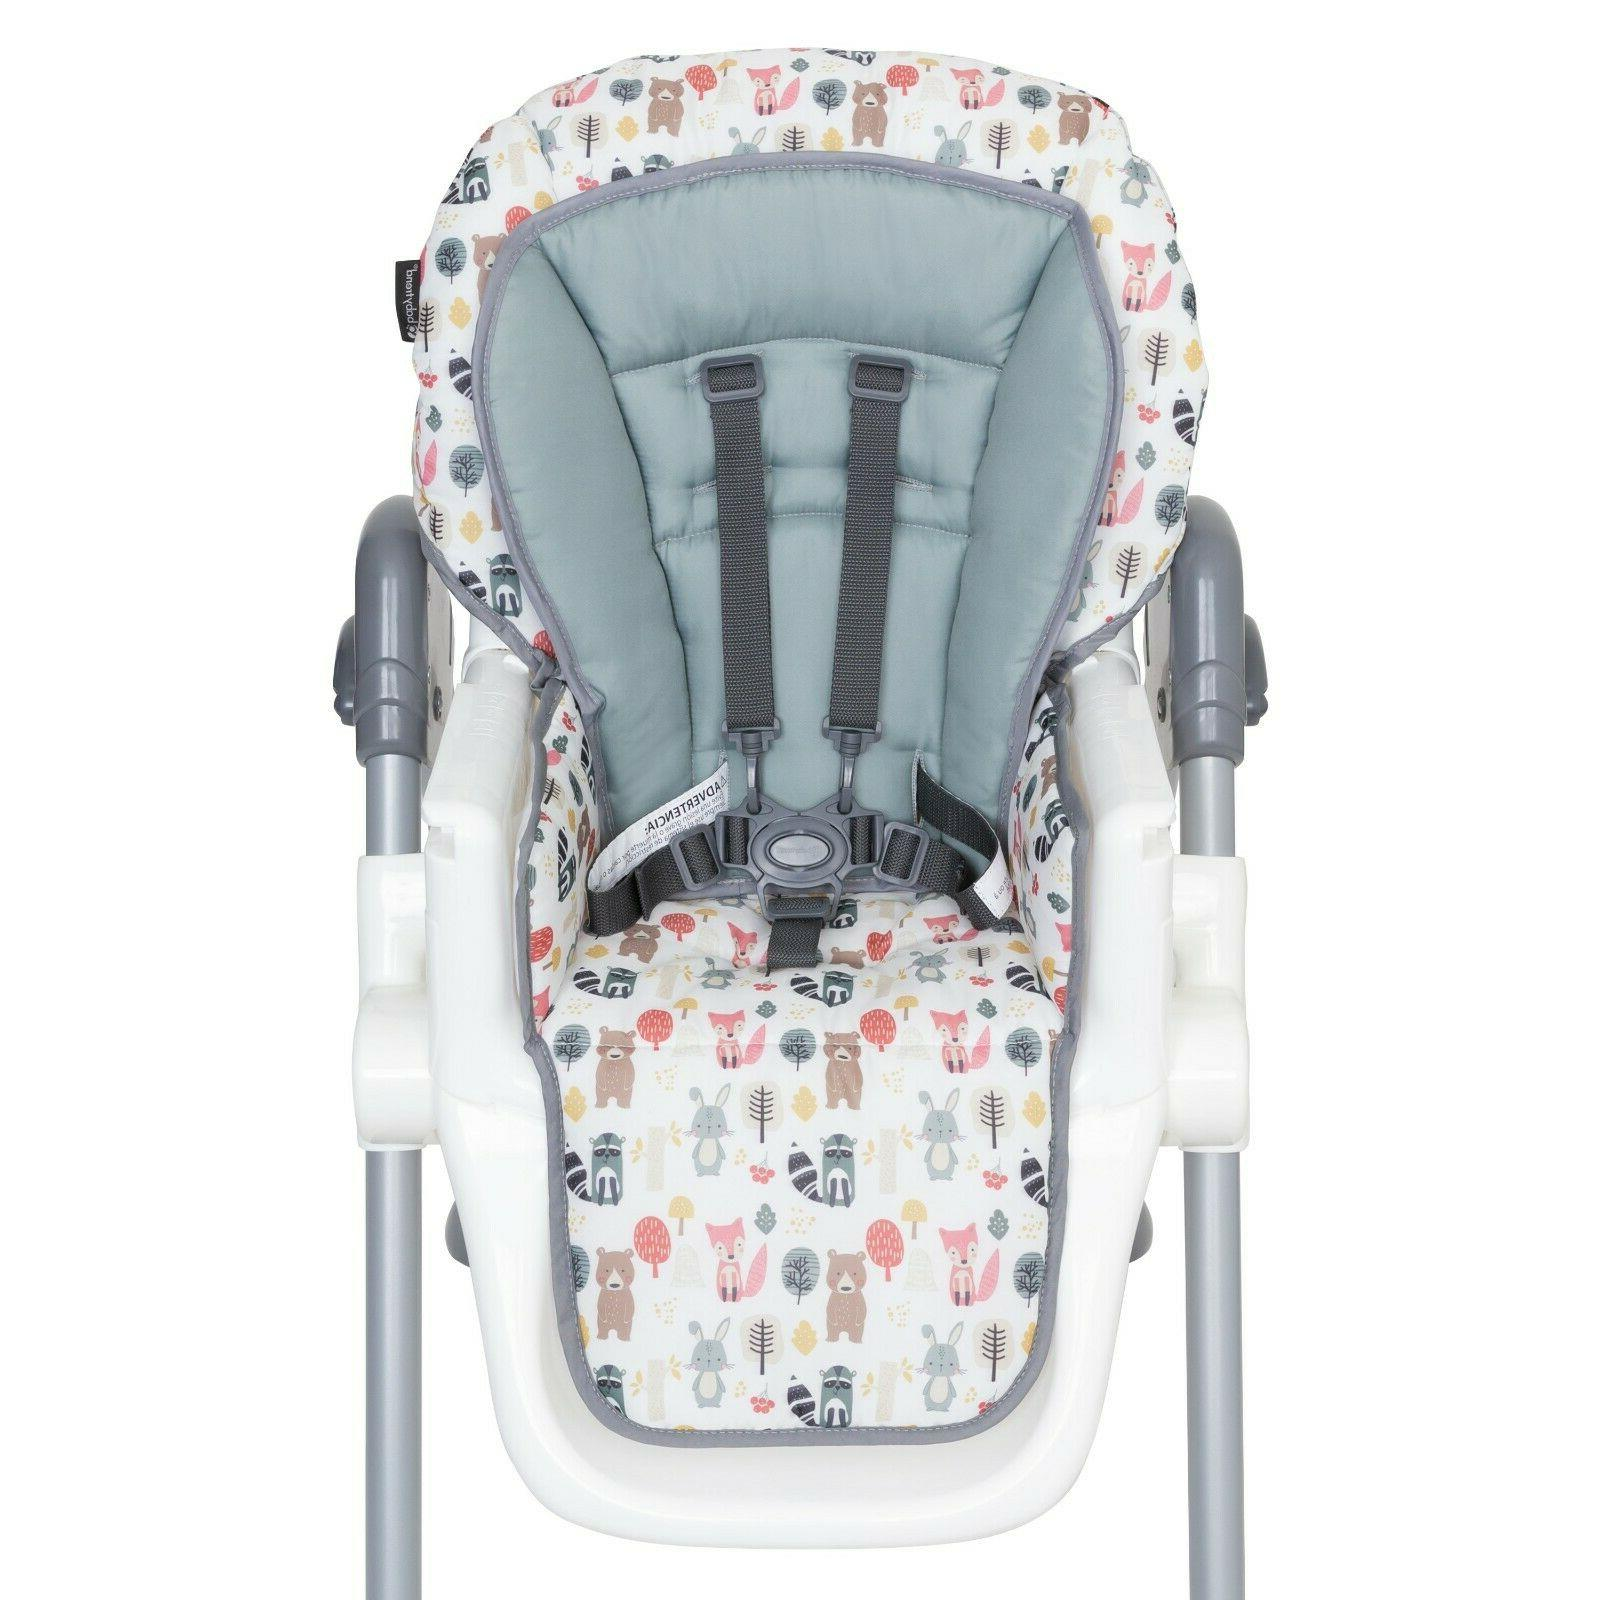 Baby High Chair Sturdy Adjustable Height Mealtime Foldable